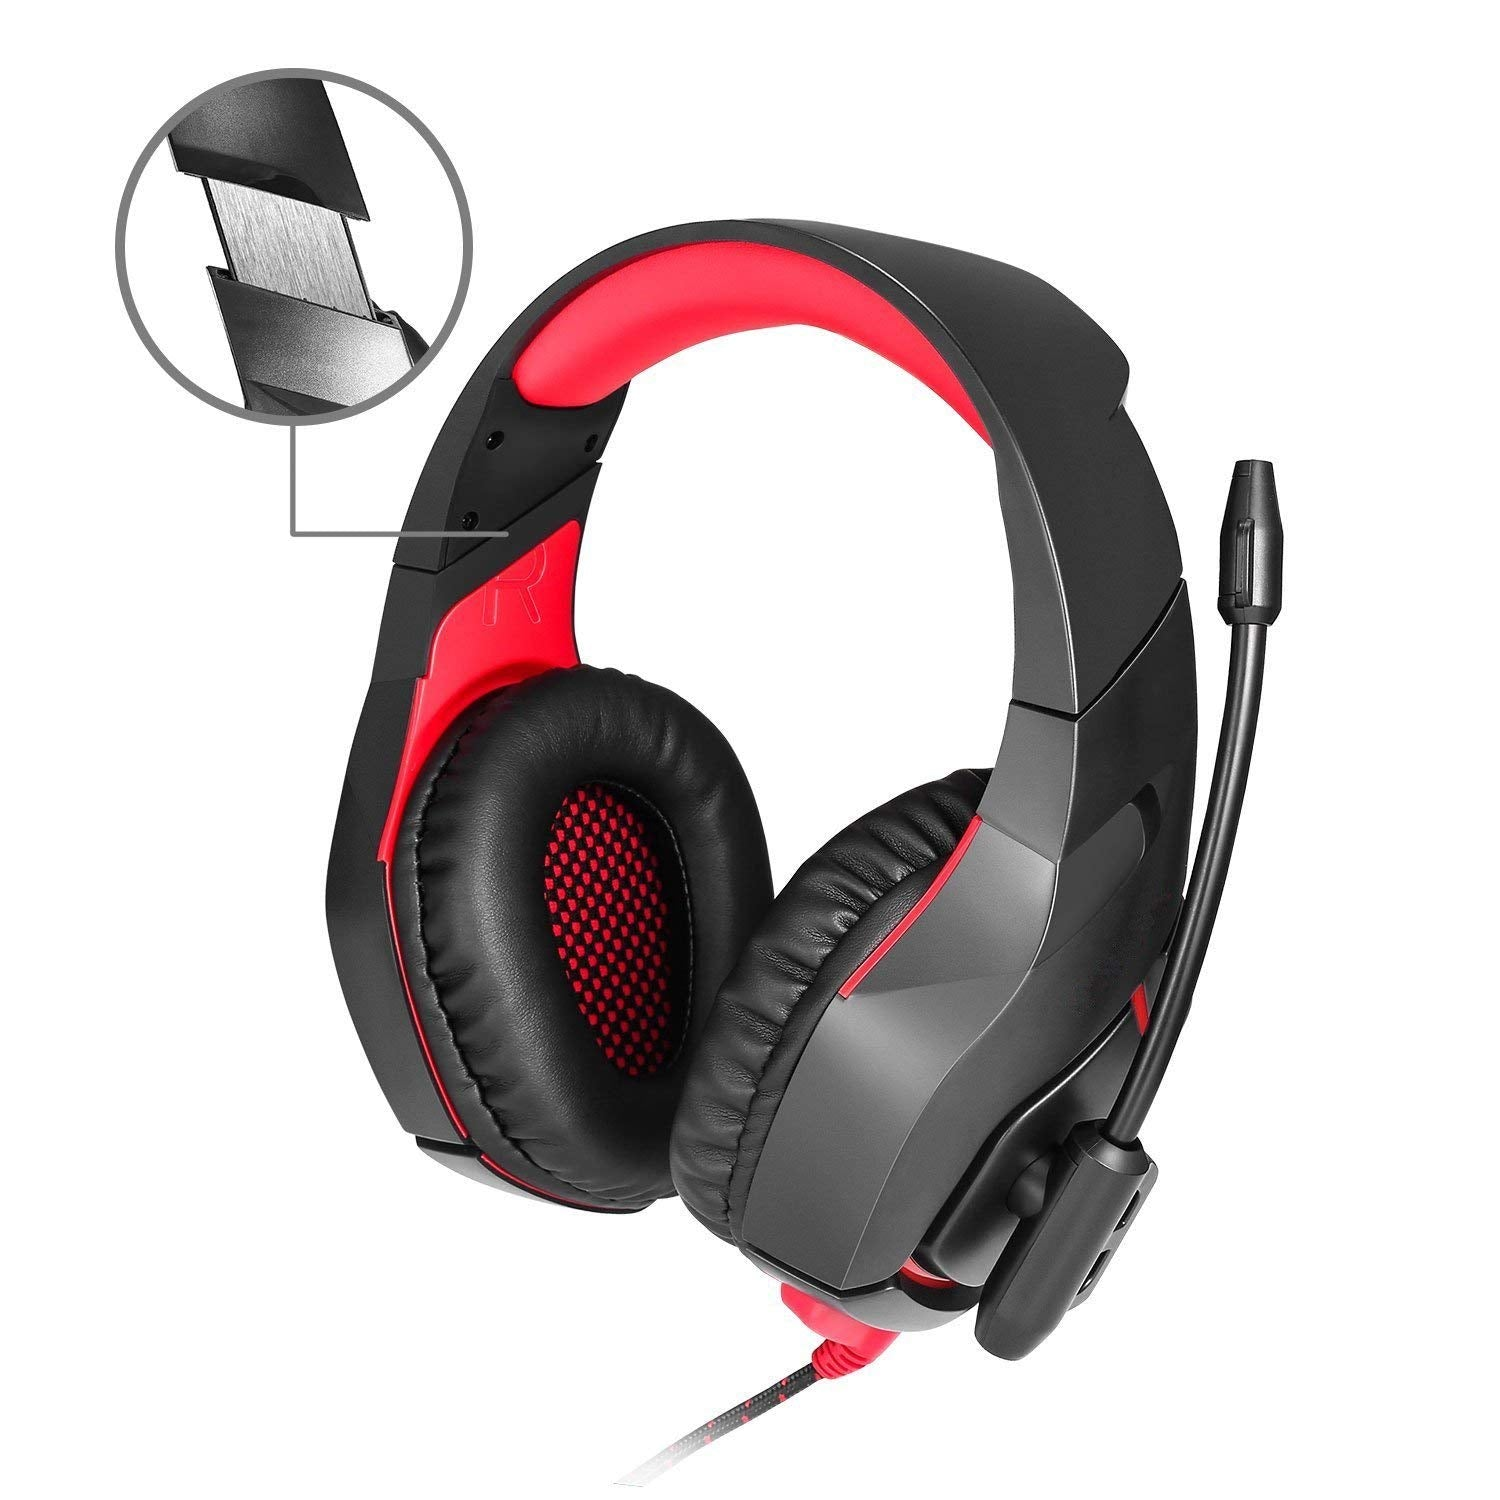 ONIKUMA Gaming Headset with Mic for PS4 PC Mac Laptop Tablet Xbox One,  Wired 3 5mm Jack 7 1 surround stereo, USB Powered LED D